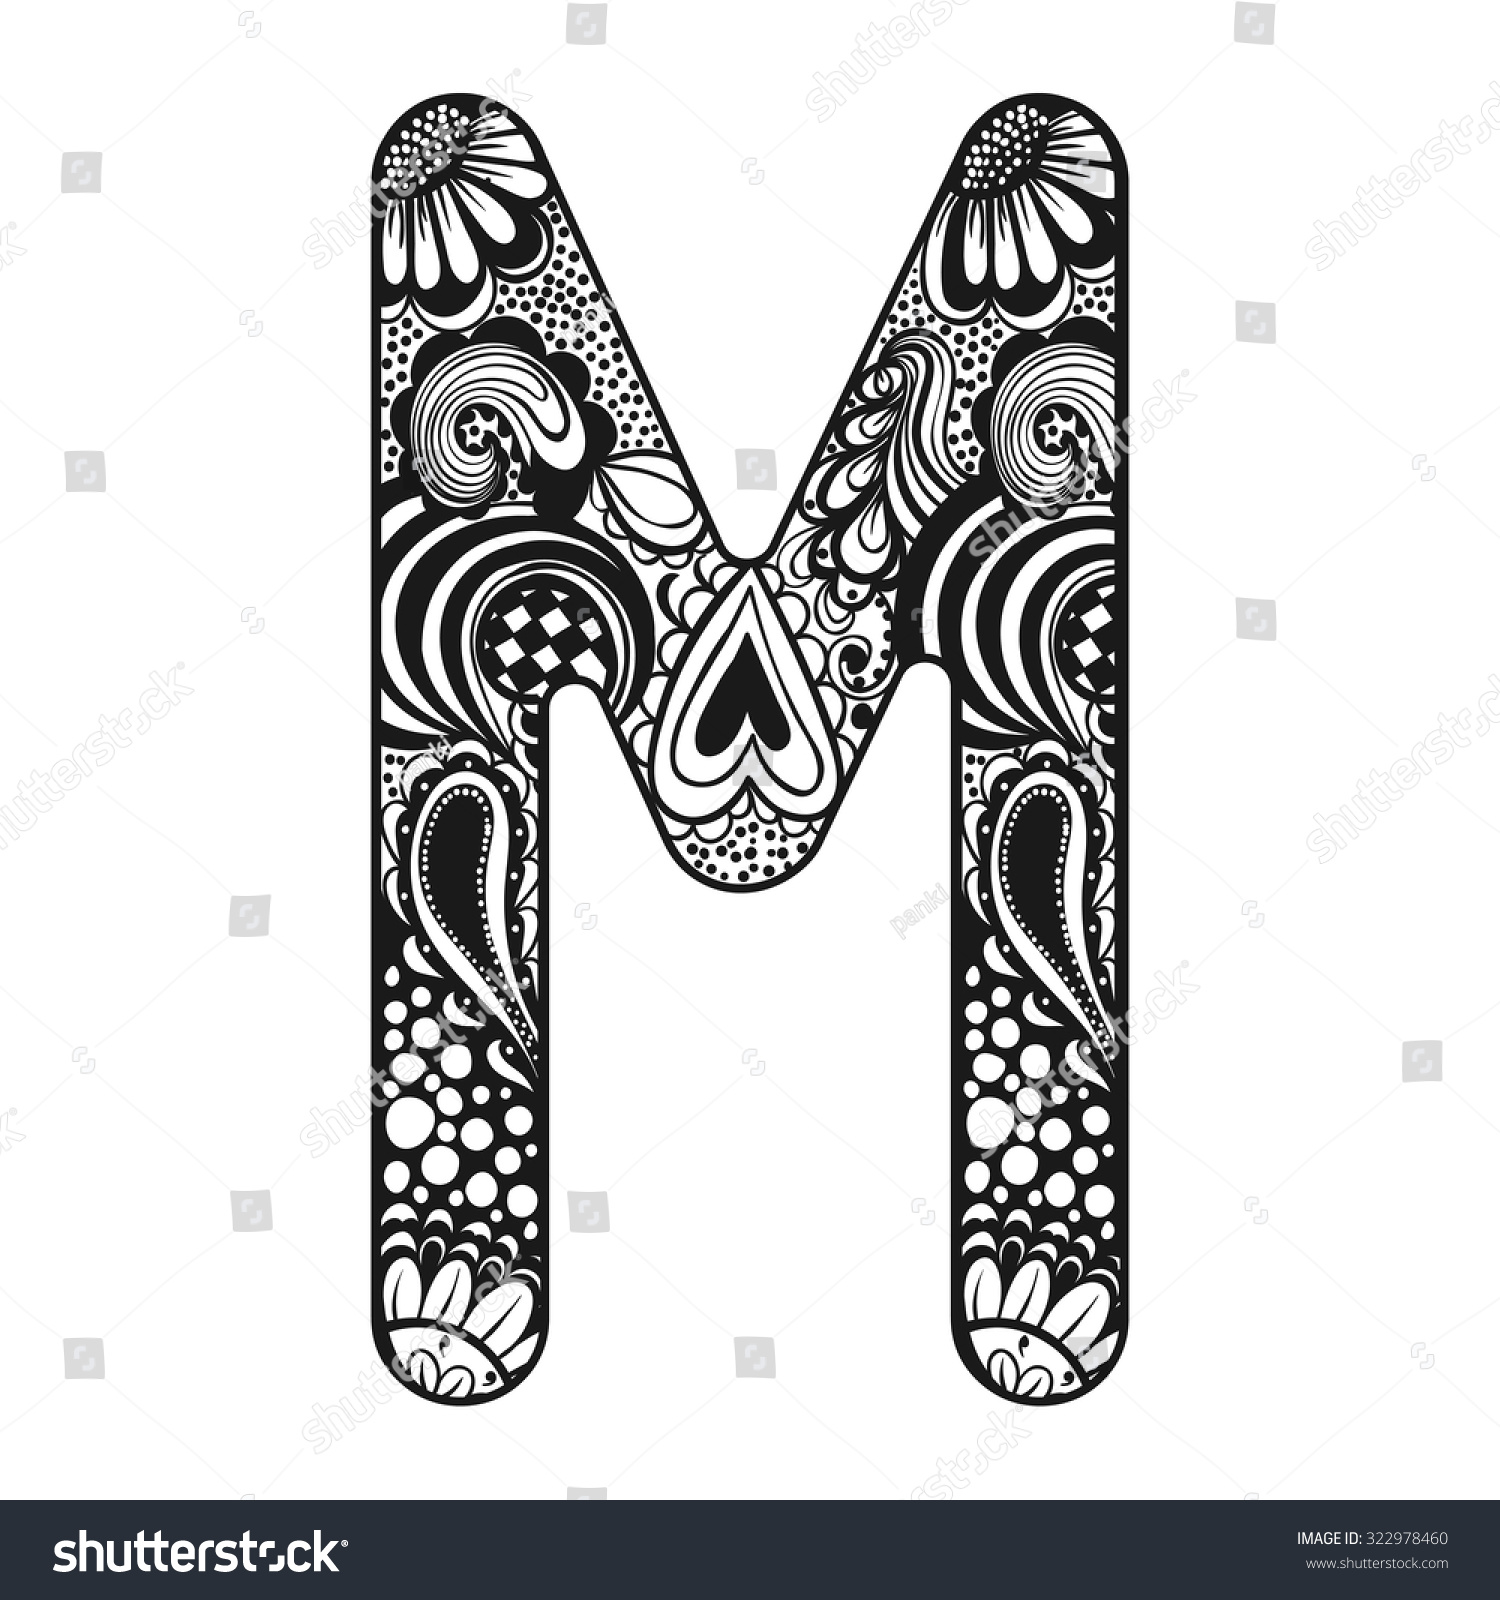 zentangle stylized alphabet lace letter m in doodle style